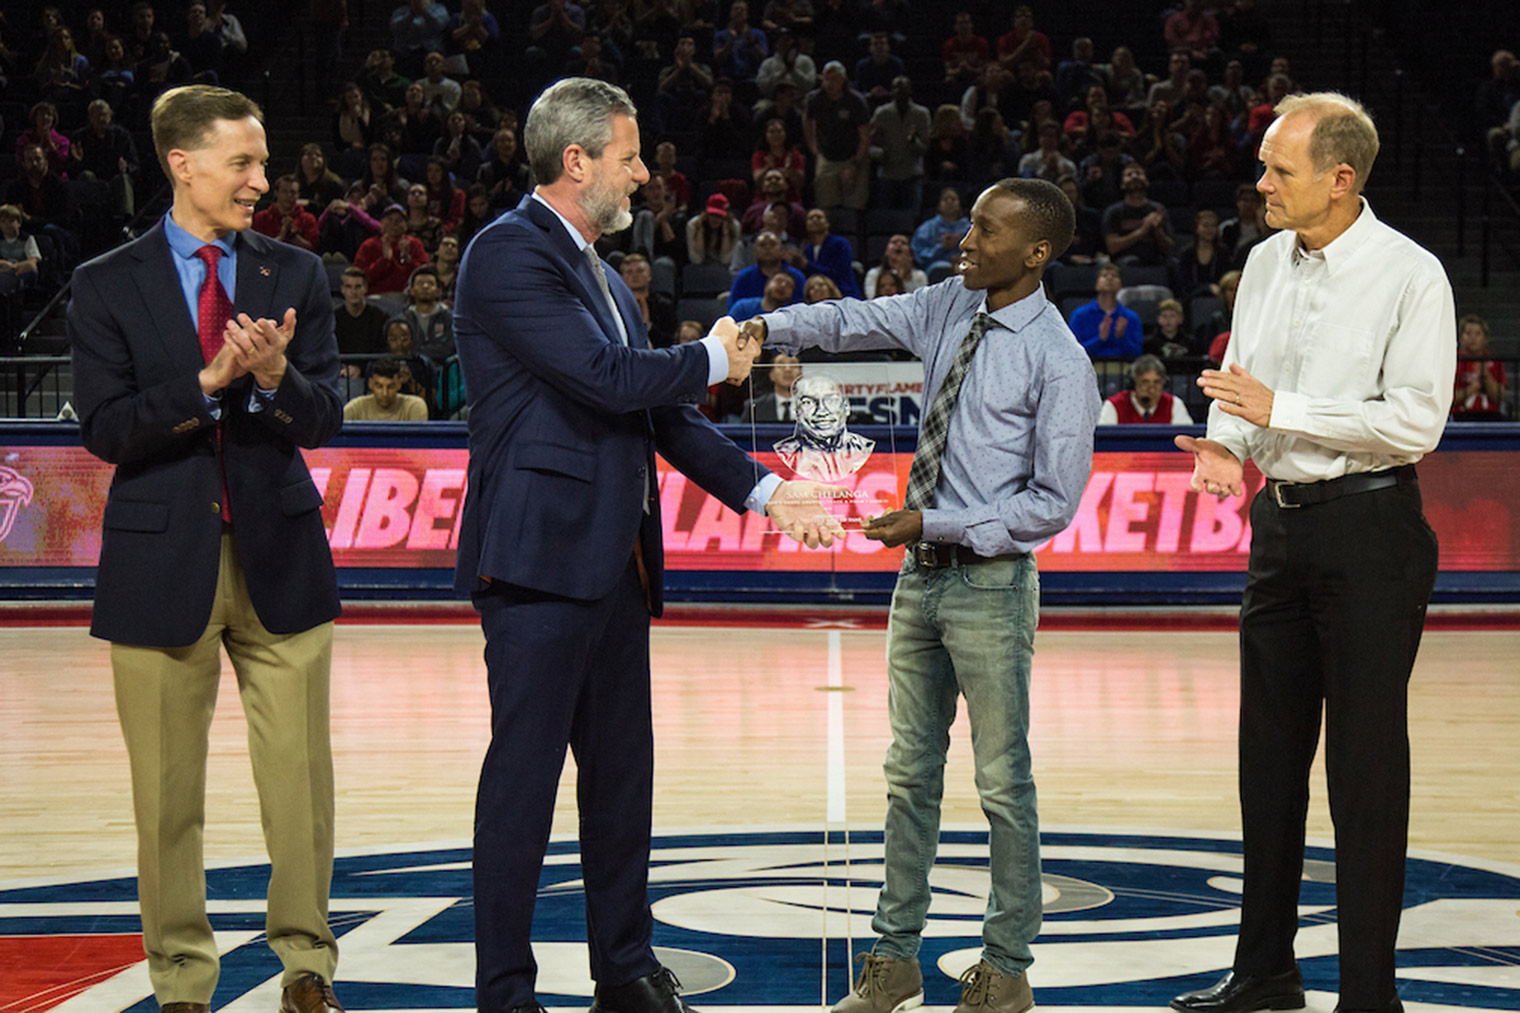 Sam Chelanga receives his plaque from Liberty University President Jerry Falwell beside Director of Athletics Ian McCaw (left) and Head Coach Brant Tolsma during Sunday's ceremony in the Vines Center, where the Athletics Hall of Fame is housed. (Photo by Leah Seavers)